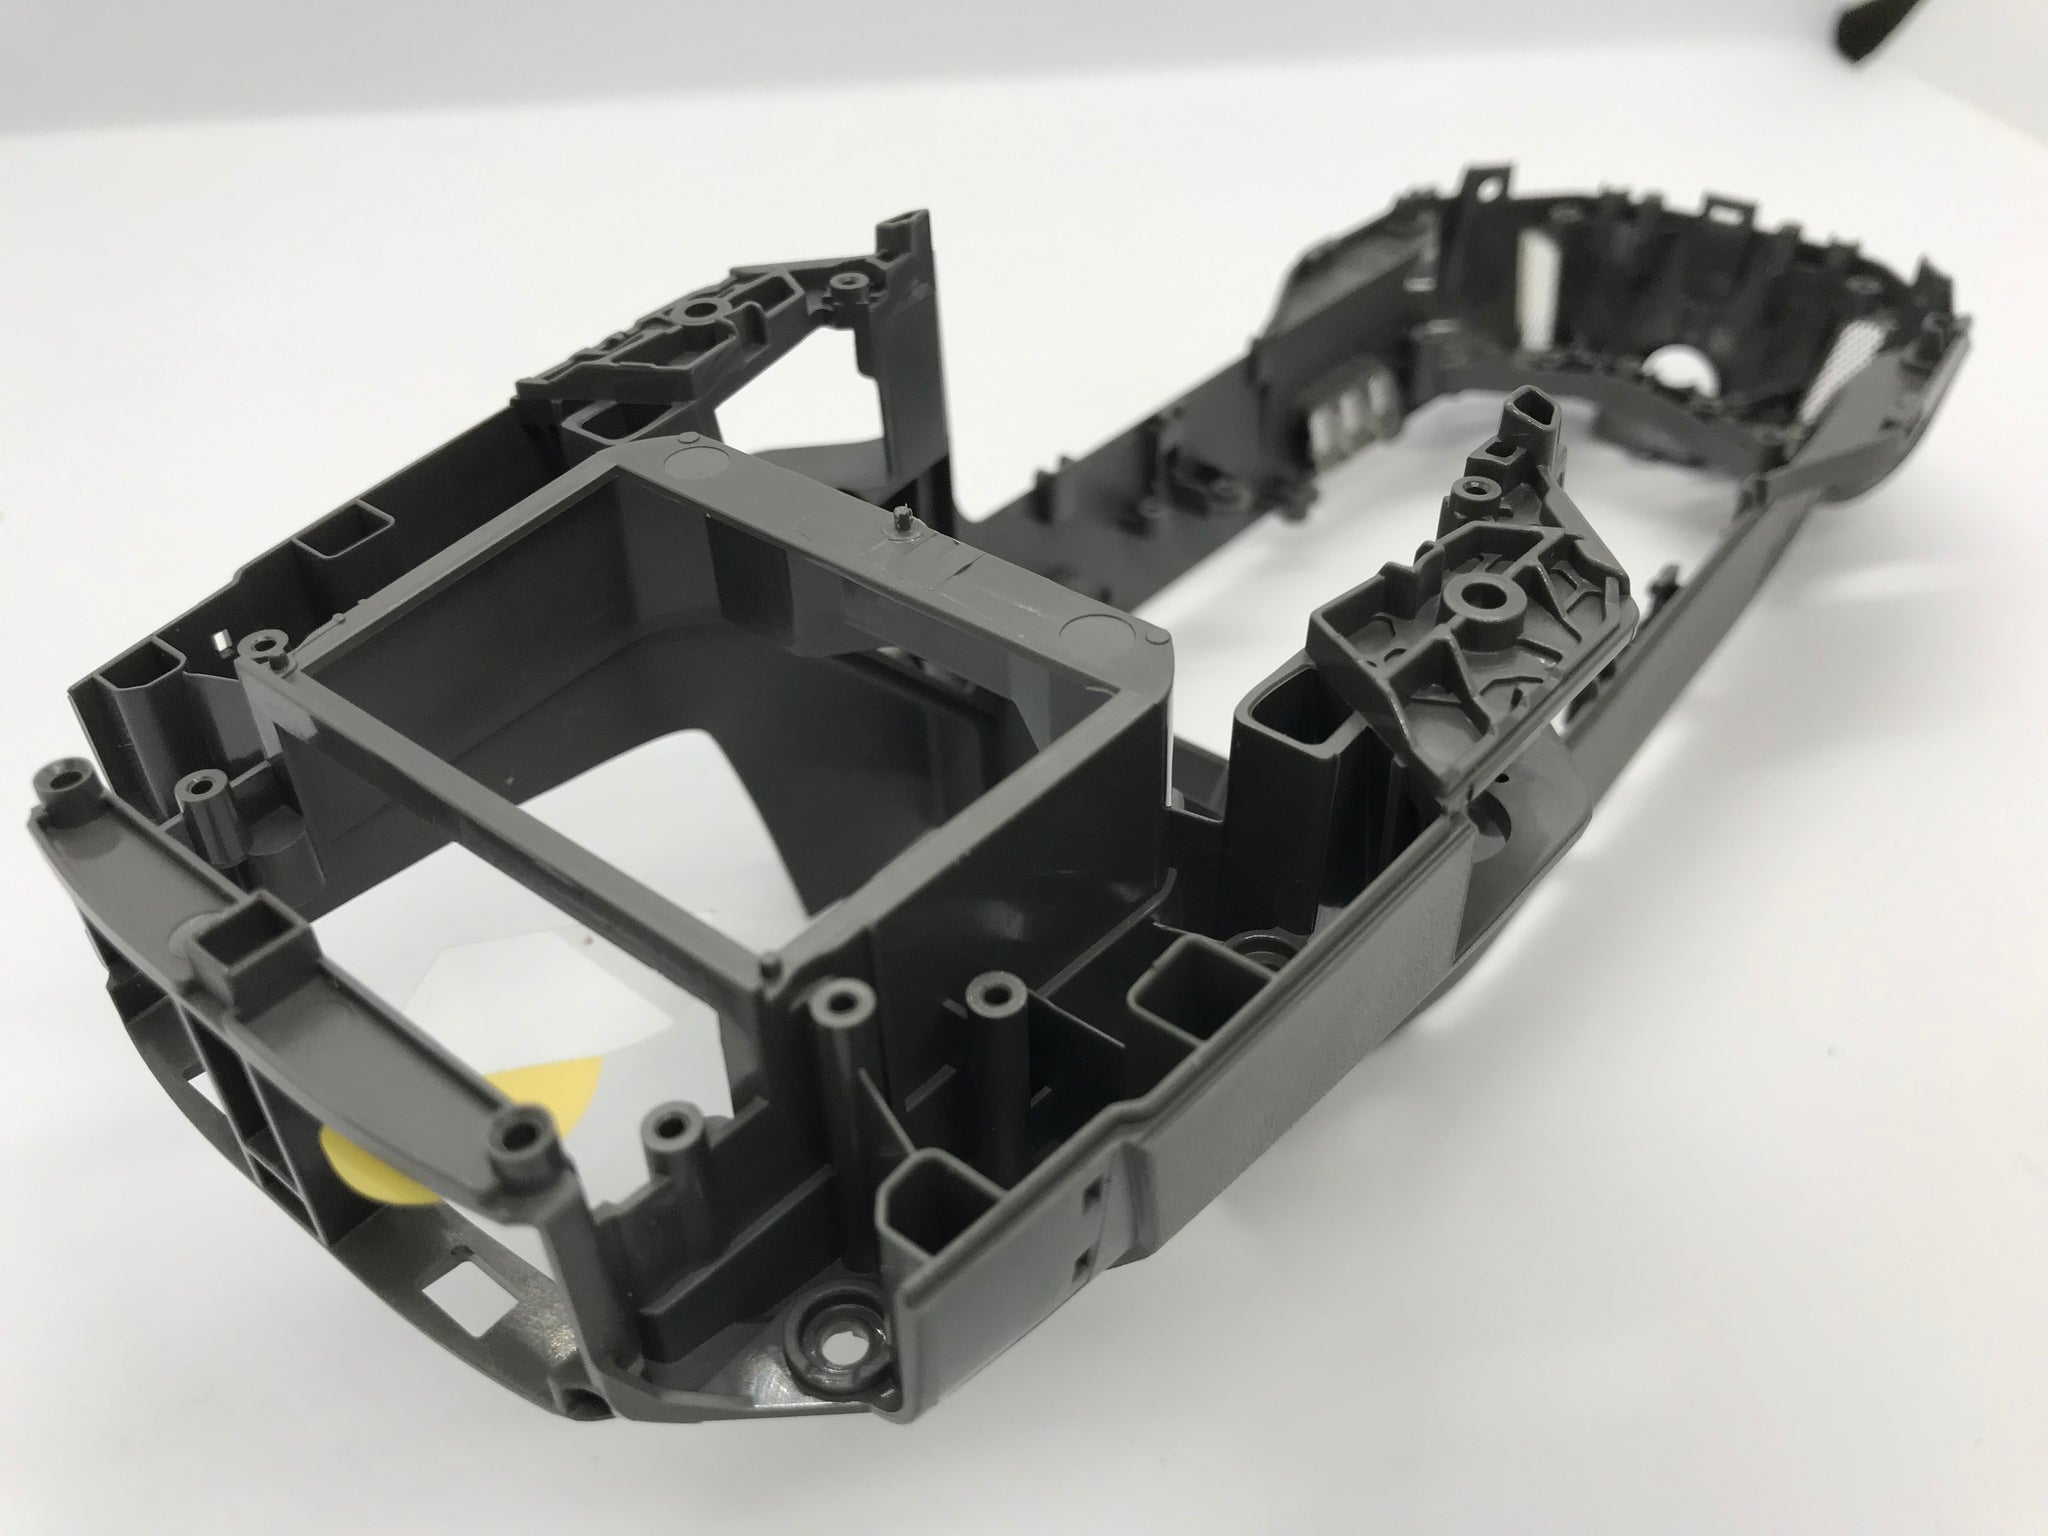 DJI Mavic 2 Middle Shell Frame module